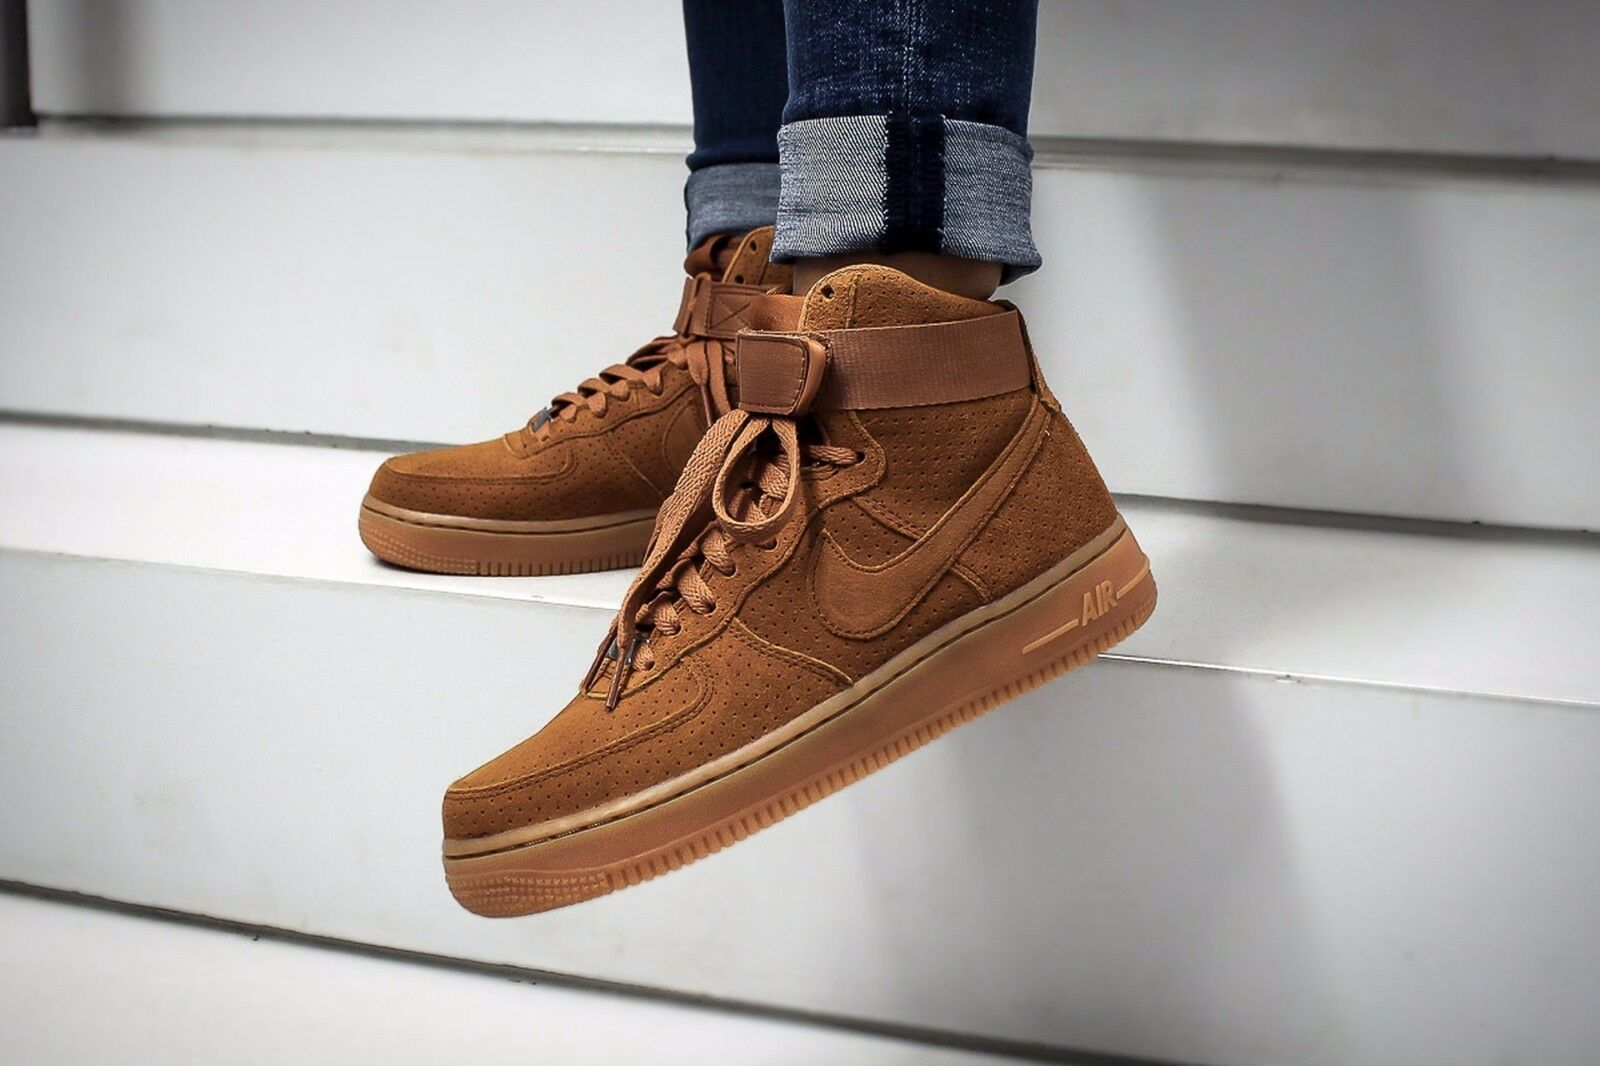 NIKE AIR FORCE 1 HIGH SUEDE TAWNY Wmn Size 8.5 749266-201